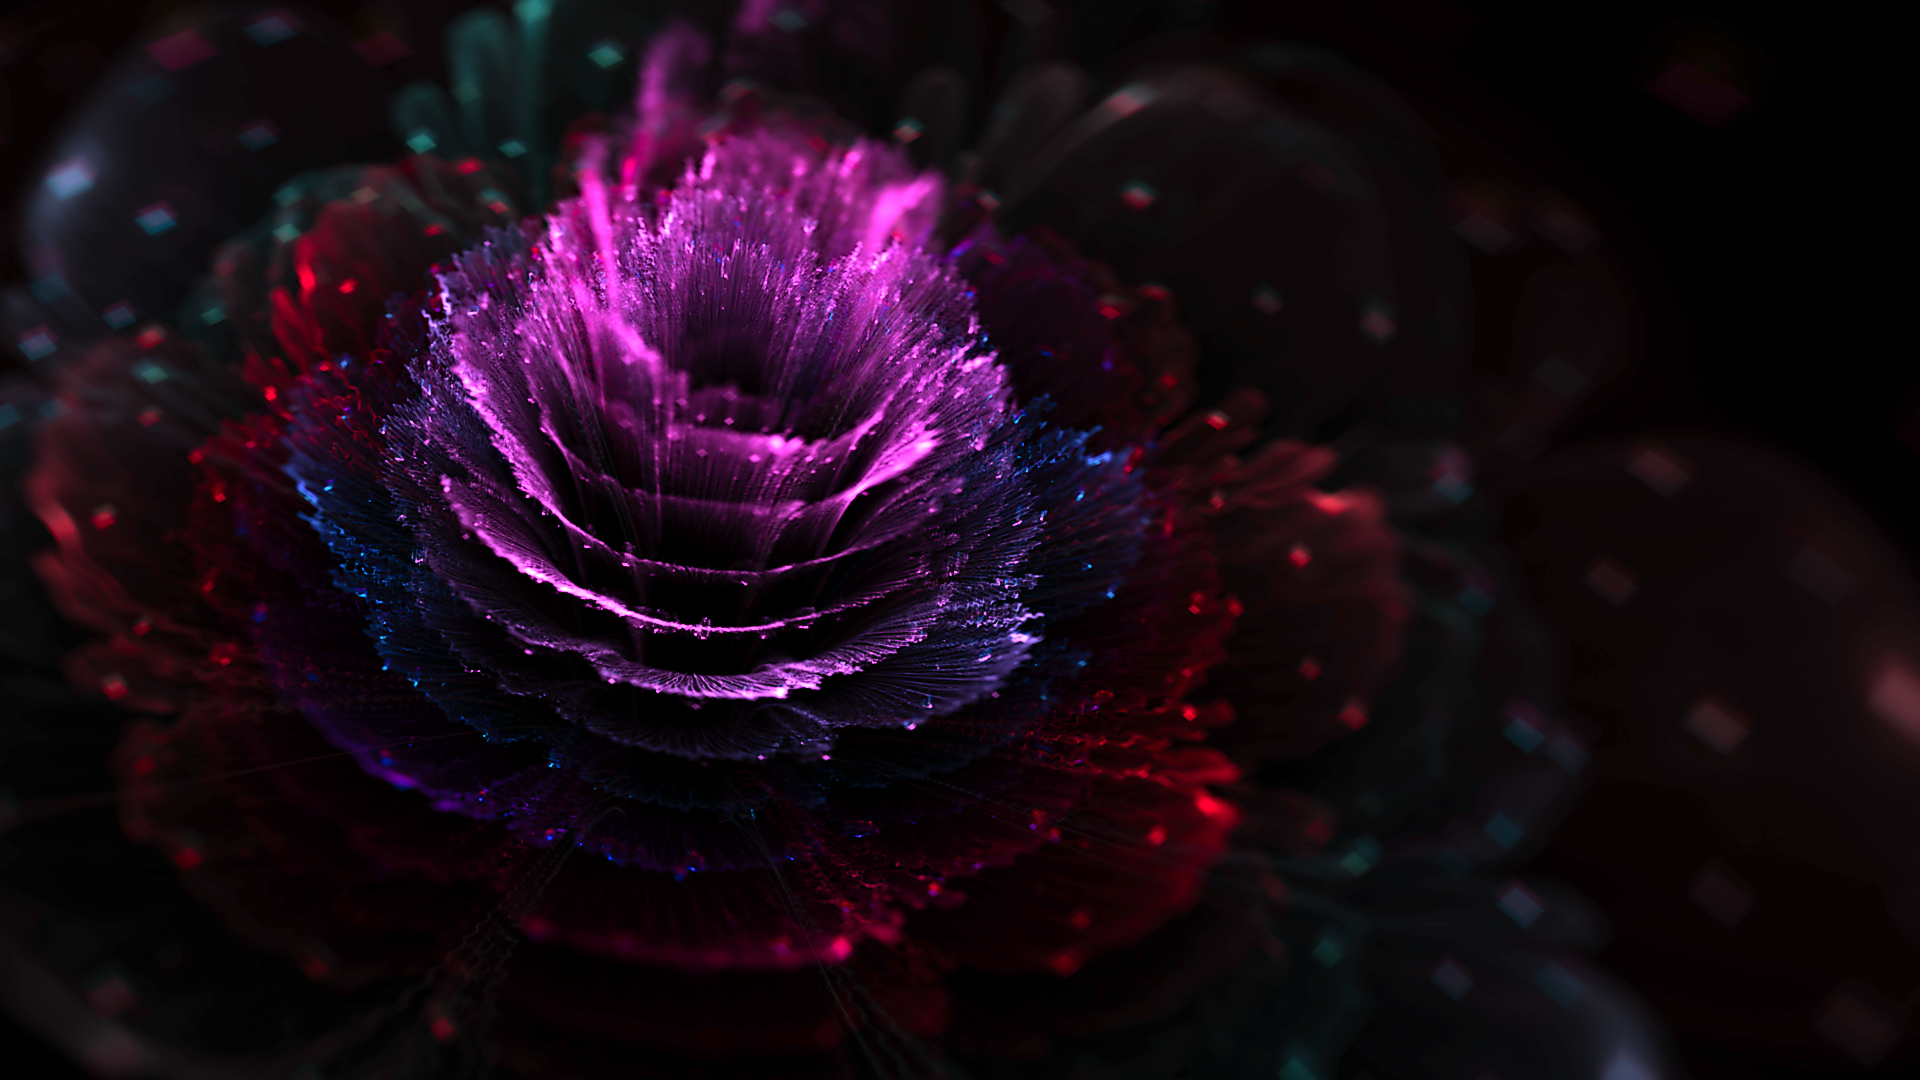 Abstract - Fractal  Purple Flower Artistic Wallpaper